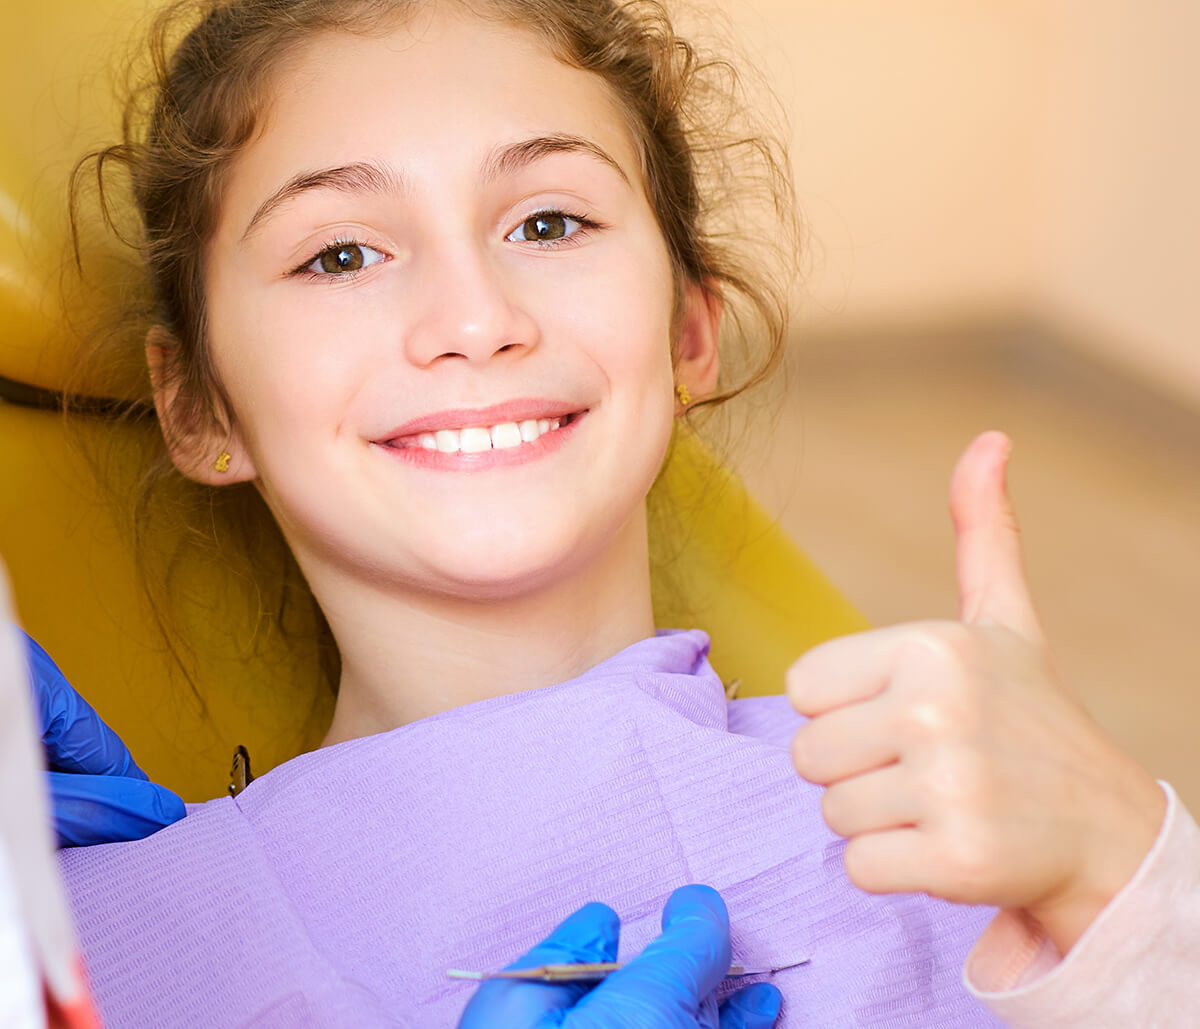 Tooth Extractions and Treatment for Kids in Greensboro Area